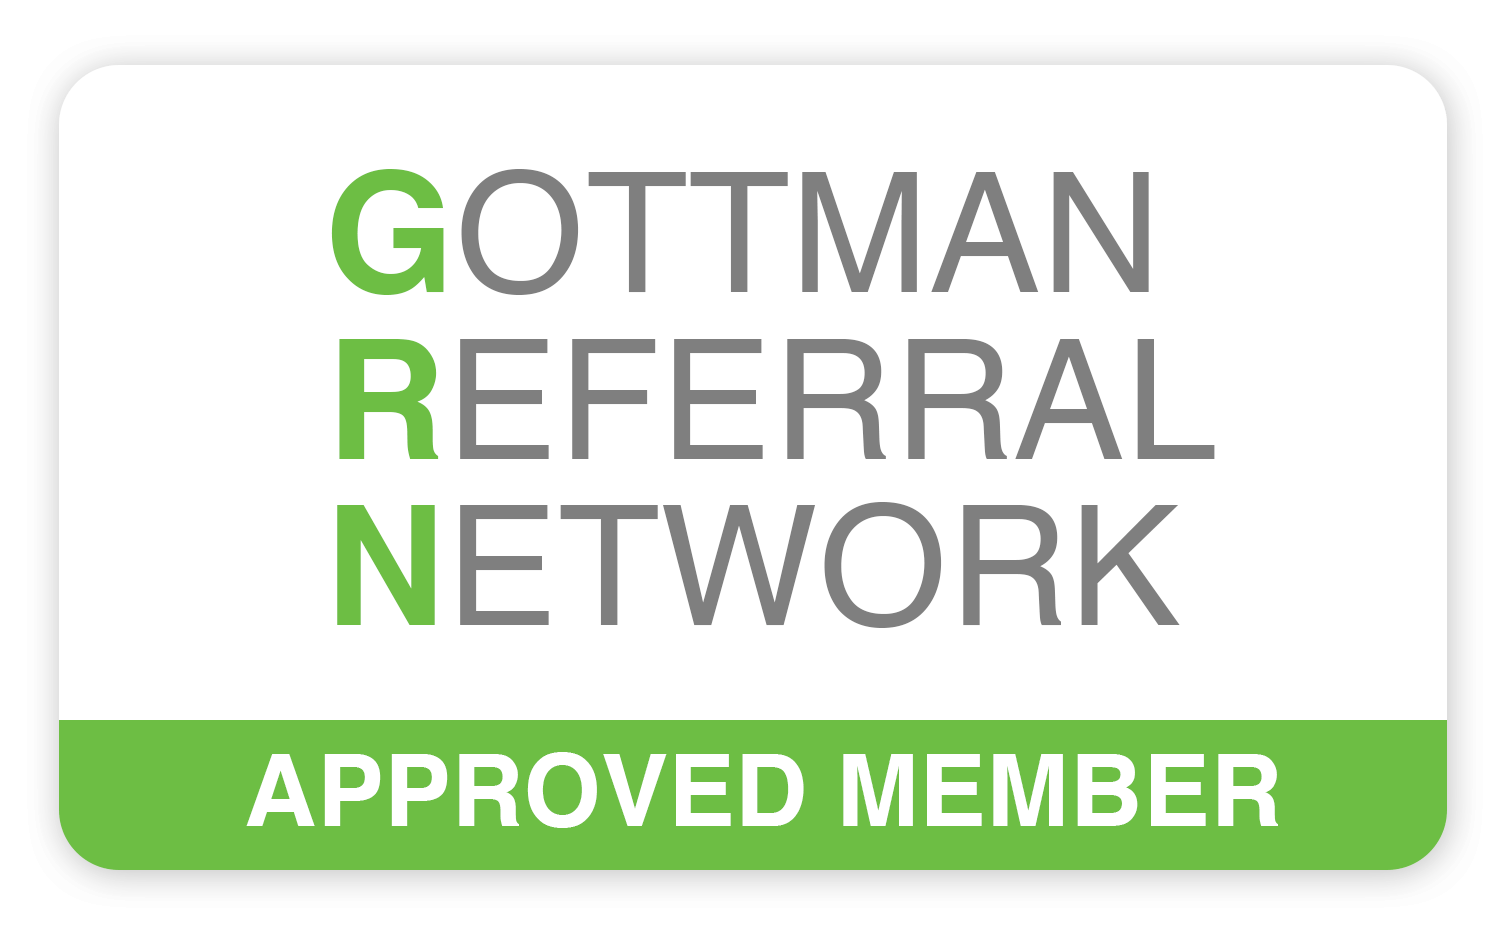 Julie Askew's profile on the Gottman Referral Network